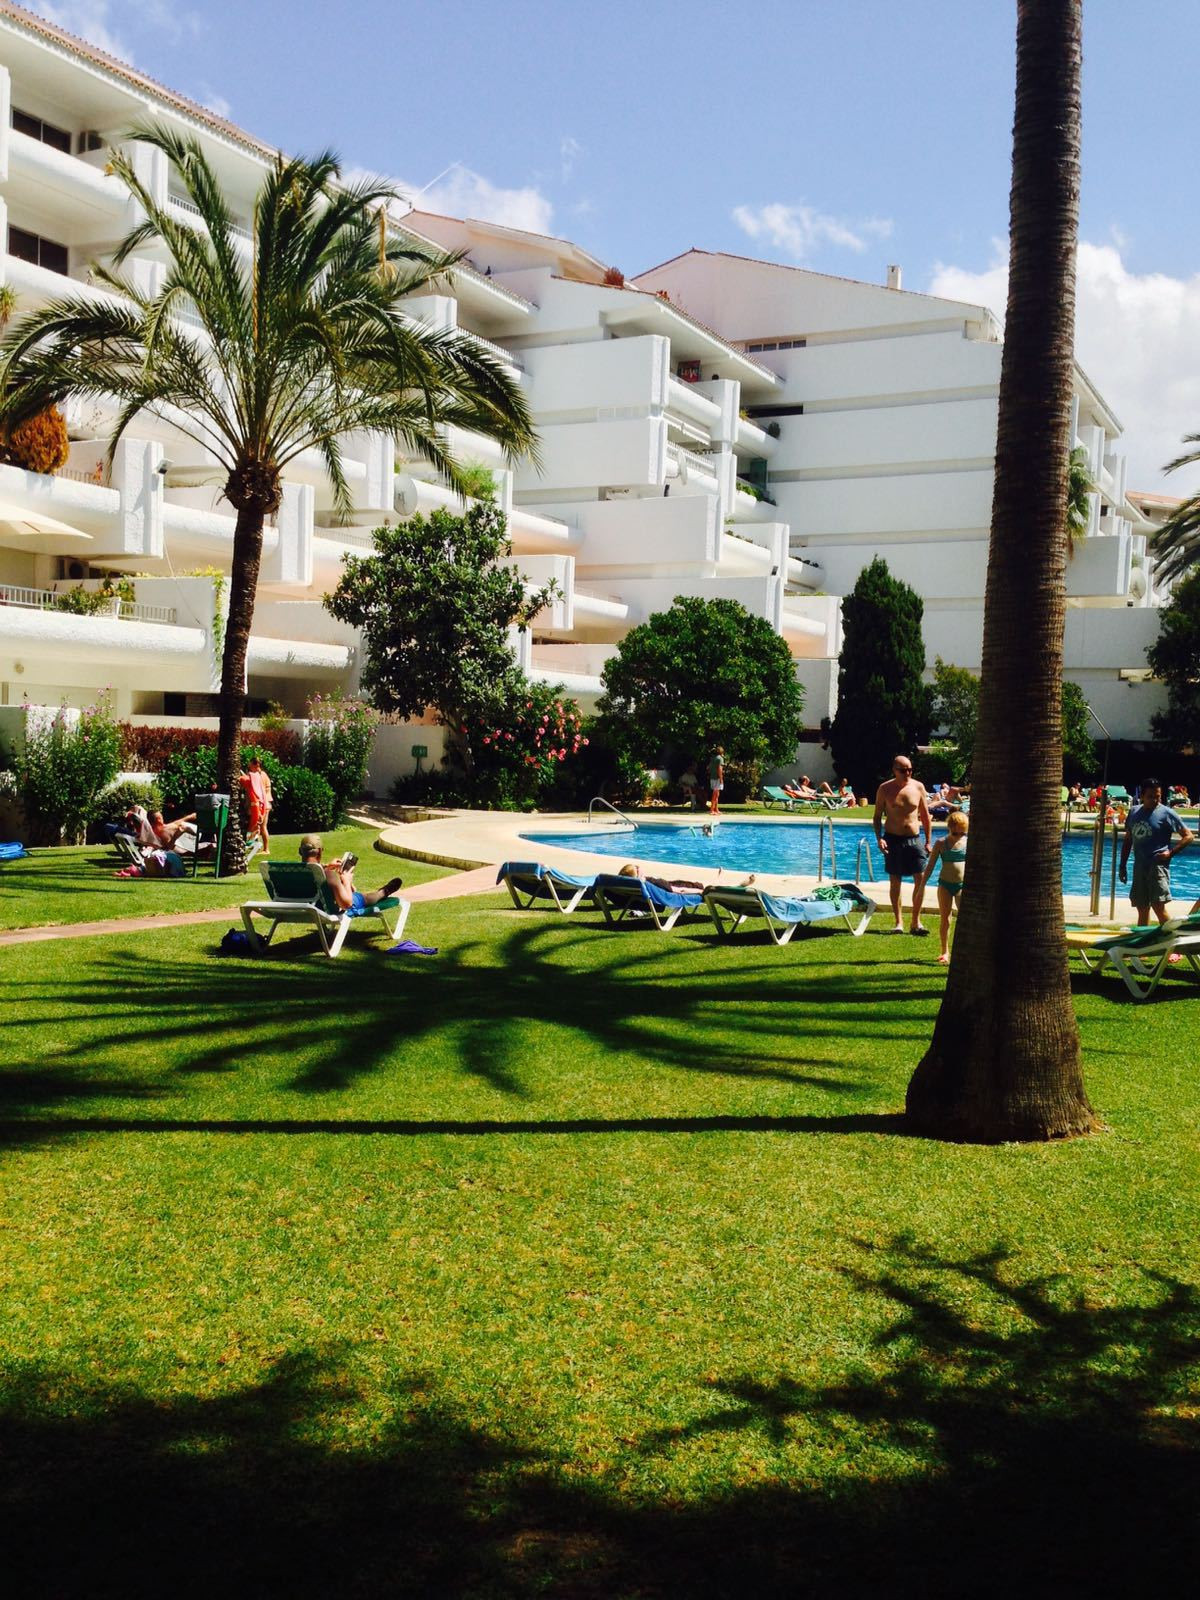 RENTED 1 bedroom apartment next to the beach in a gated complex on the Golden Mile. This complex is , Spain